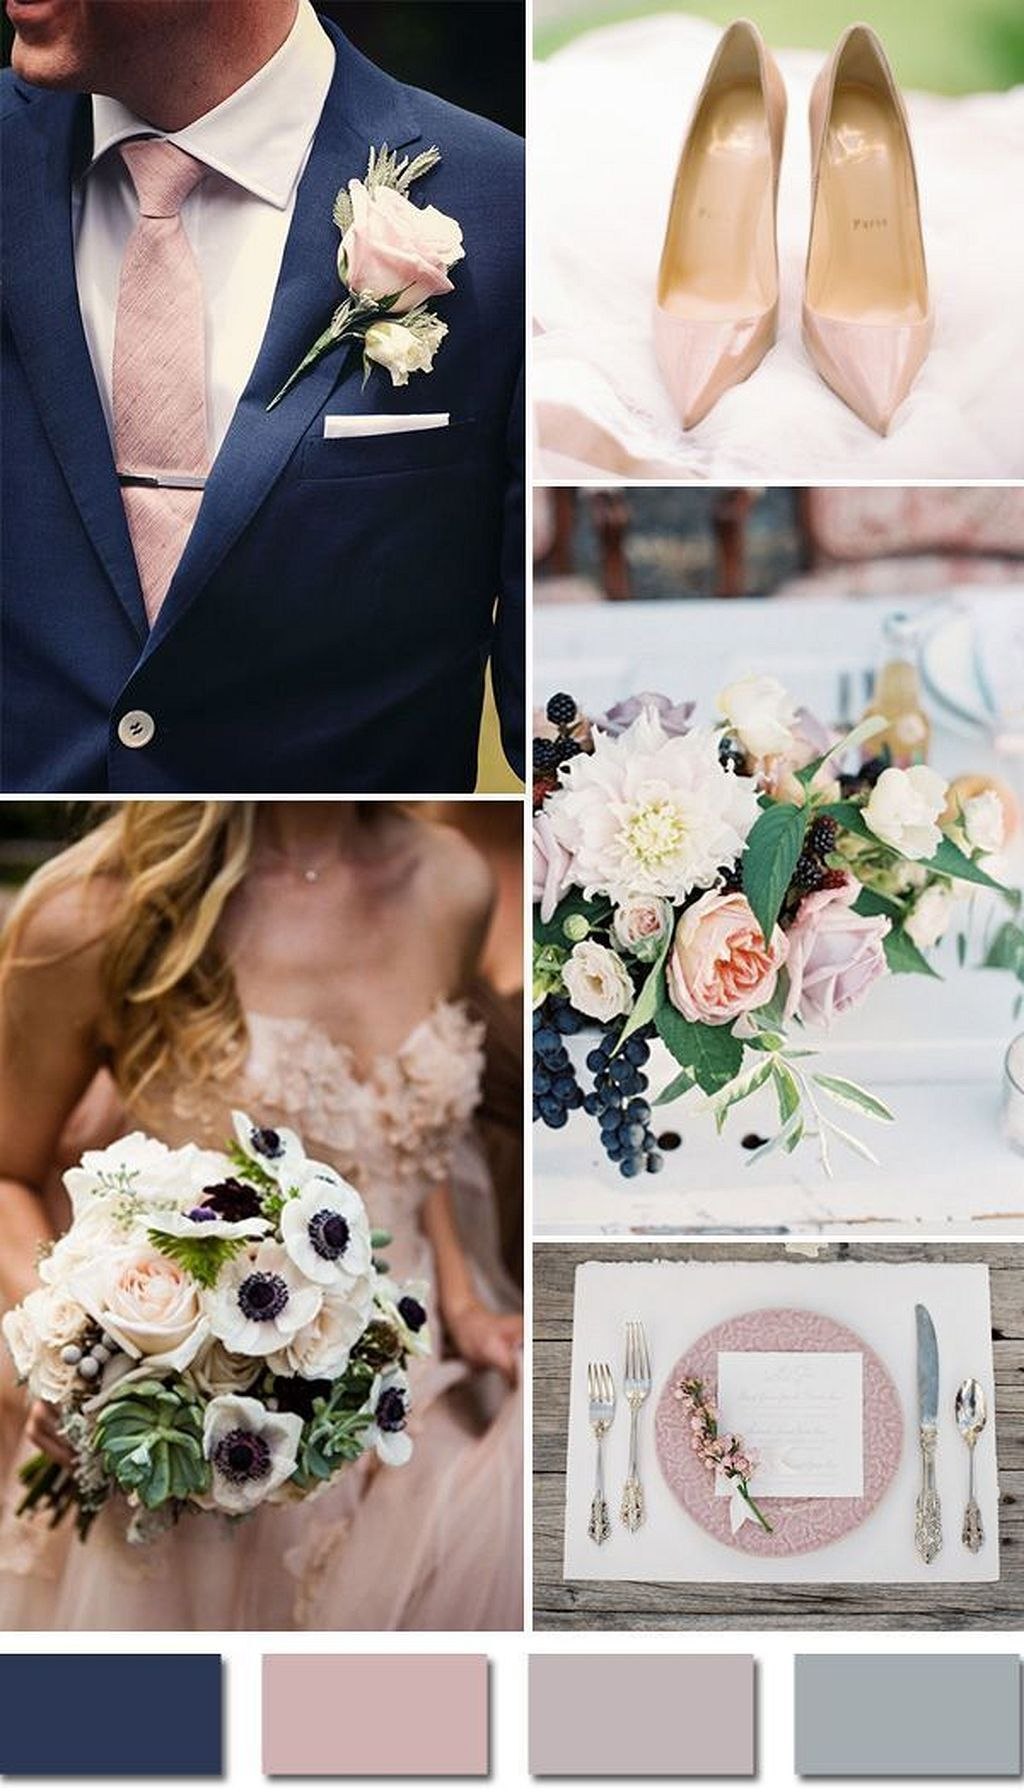 108 Navy Blue Wedding Theme Ideas Navy Blue Wedding Theme Blue